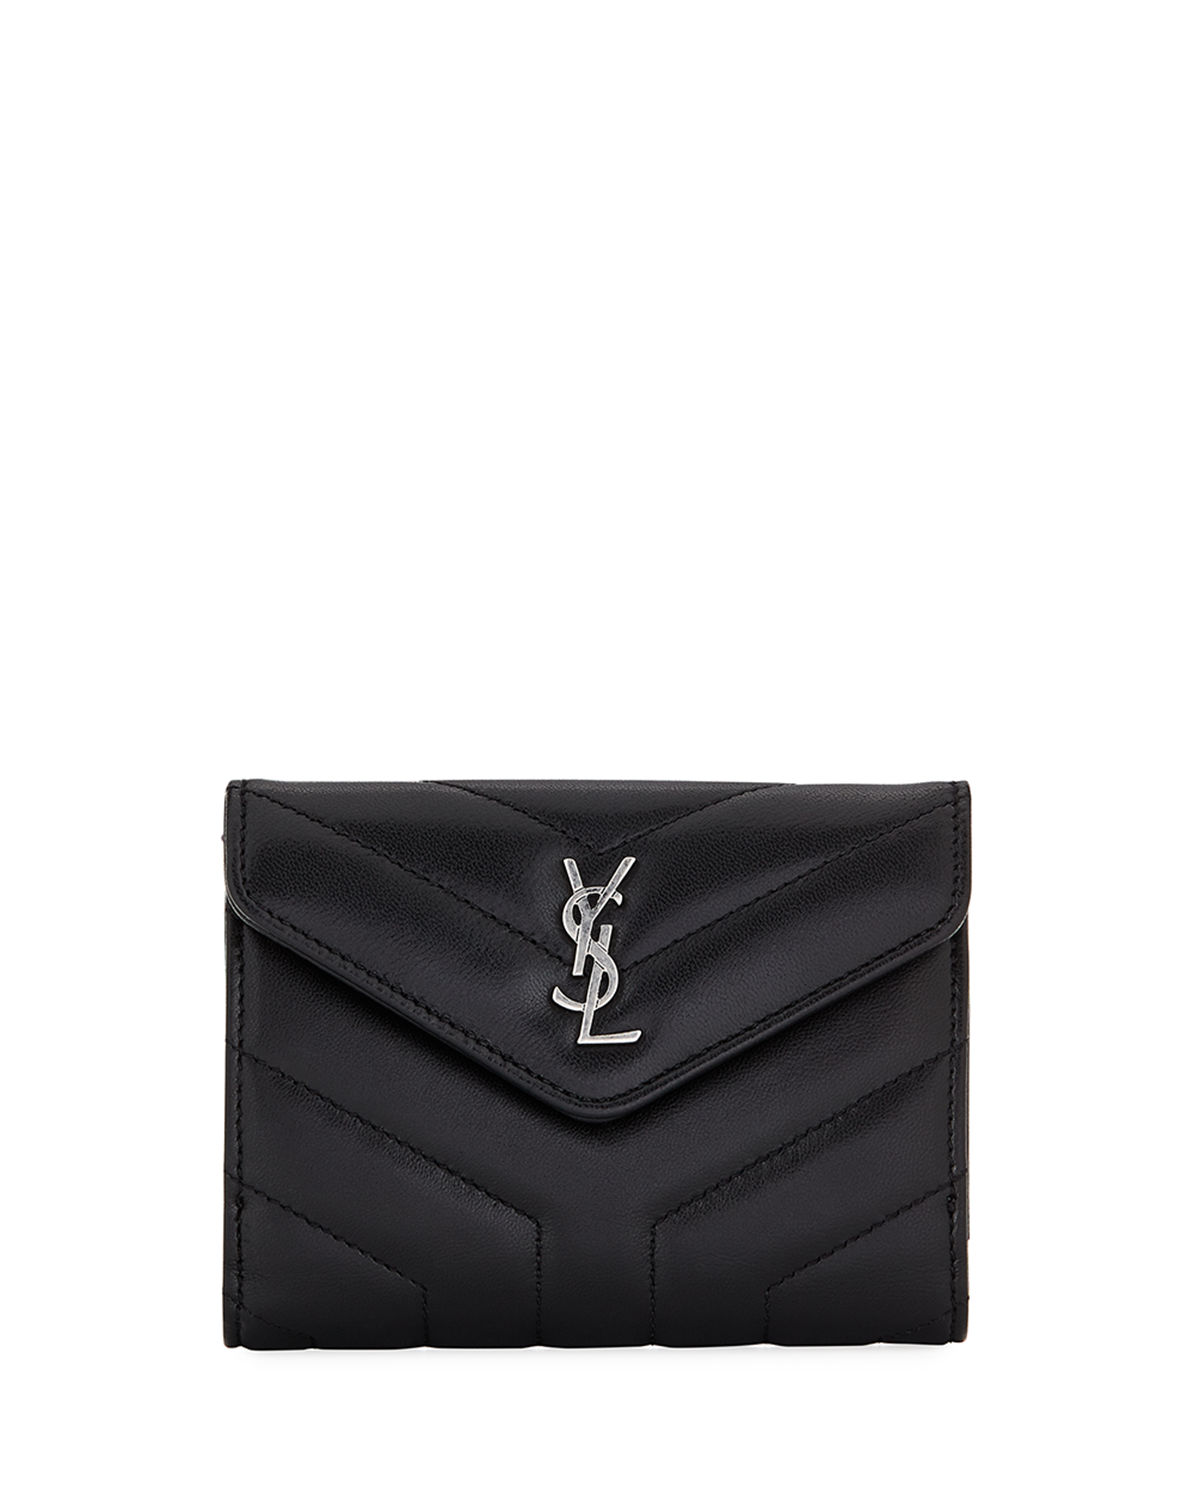 Lou Lou Small V-Flap Wallet